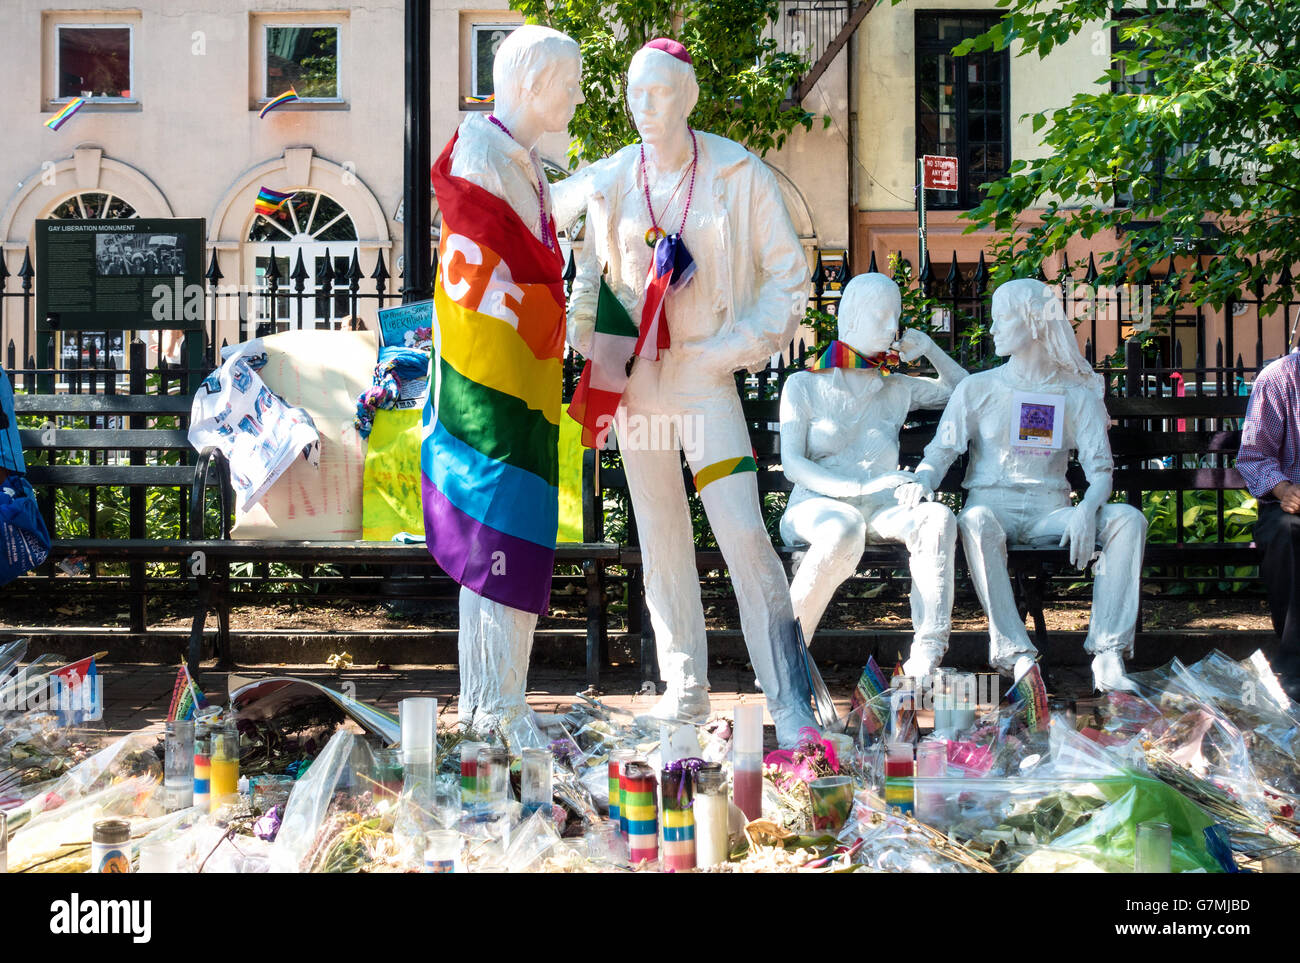 The Gay Liberation Monument by George Segal in Christopher Park near the Stonewall Inn in Greenwich Village in New - Stock Image